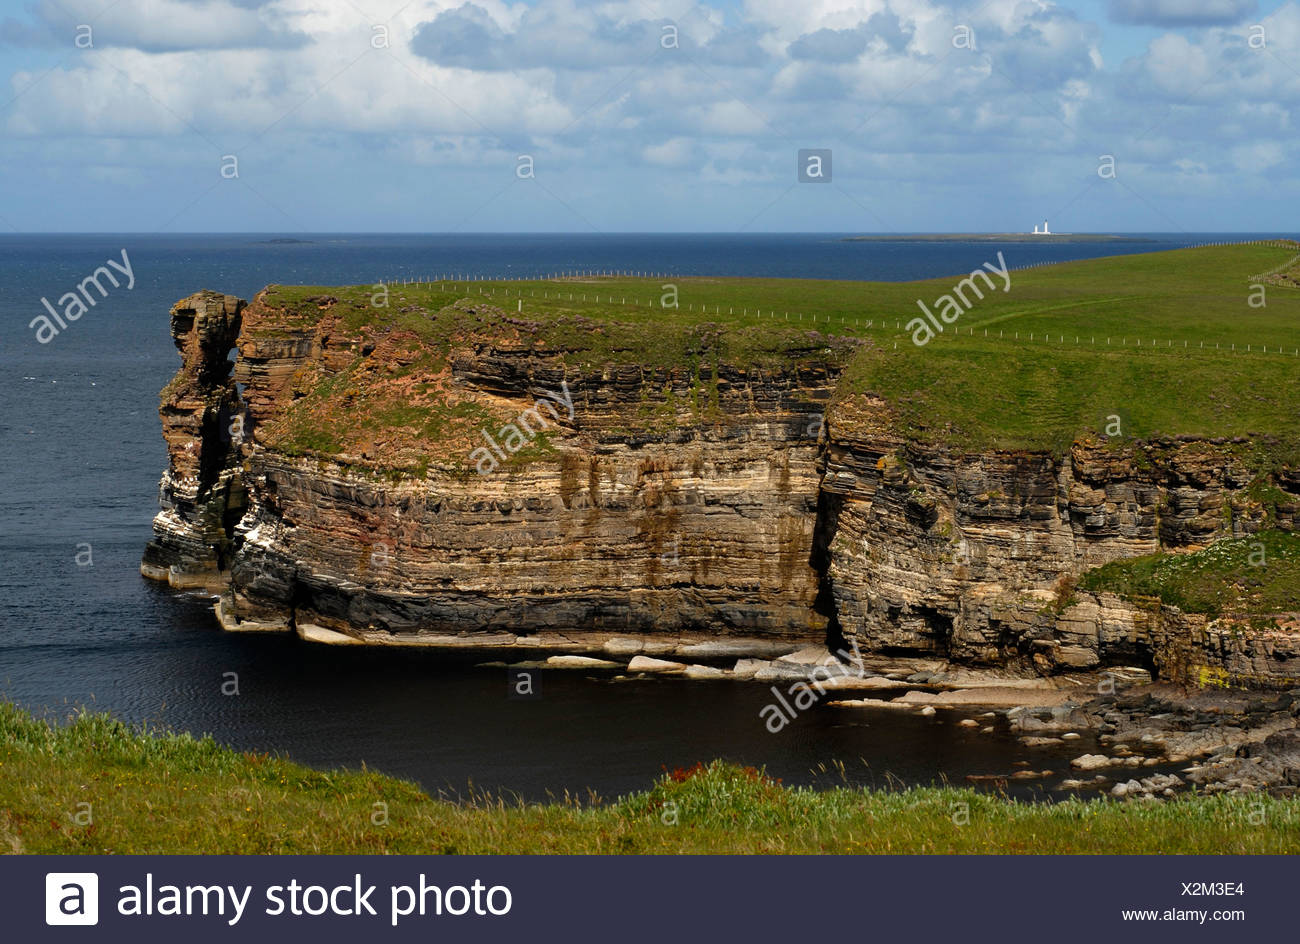 View onto the Orkney Isles from Duncasby Head, Scotland, United Kingdom, Europe - Stock Image